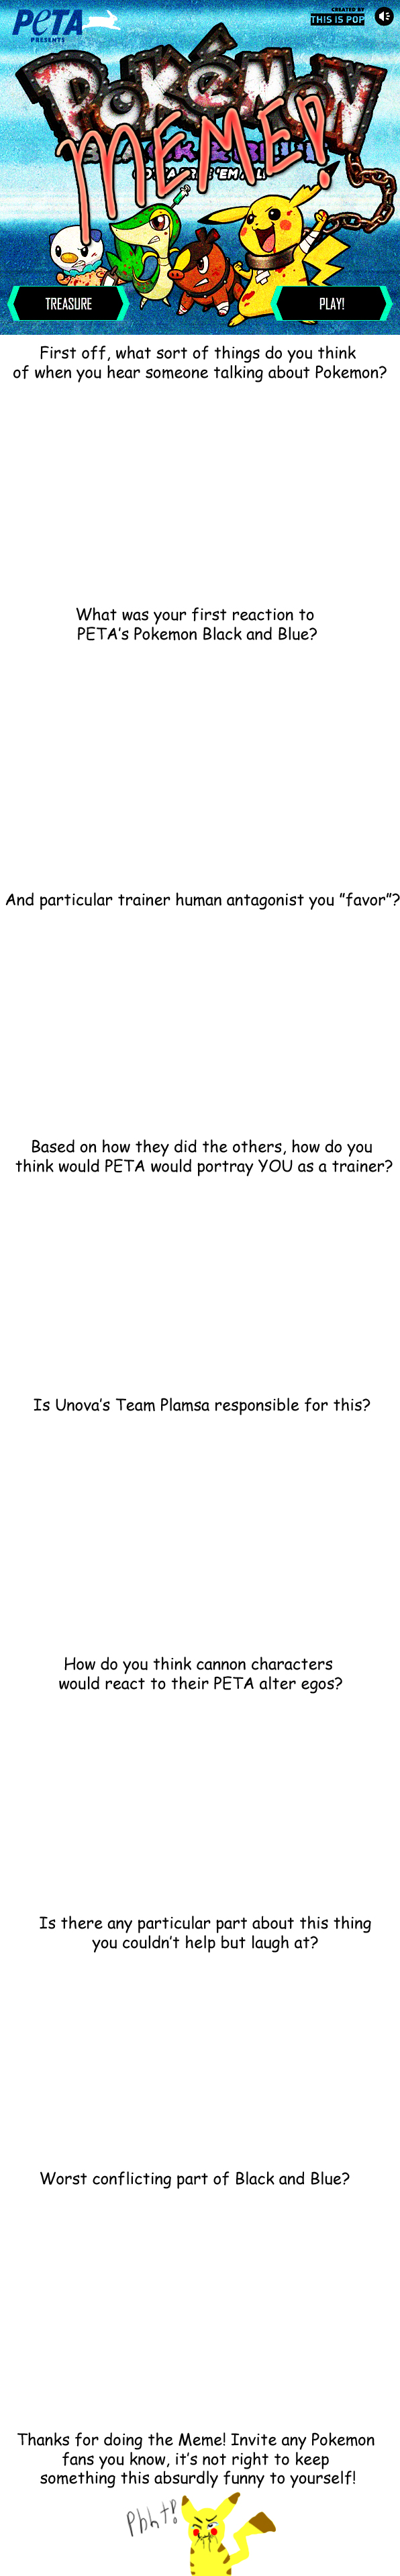 Pokemon Meme: PETA's Black and Blue by Aniral